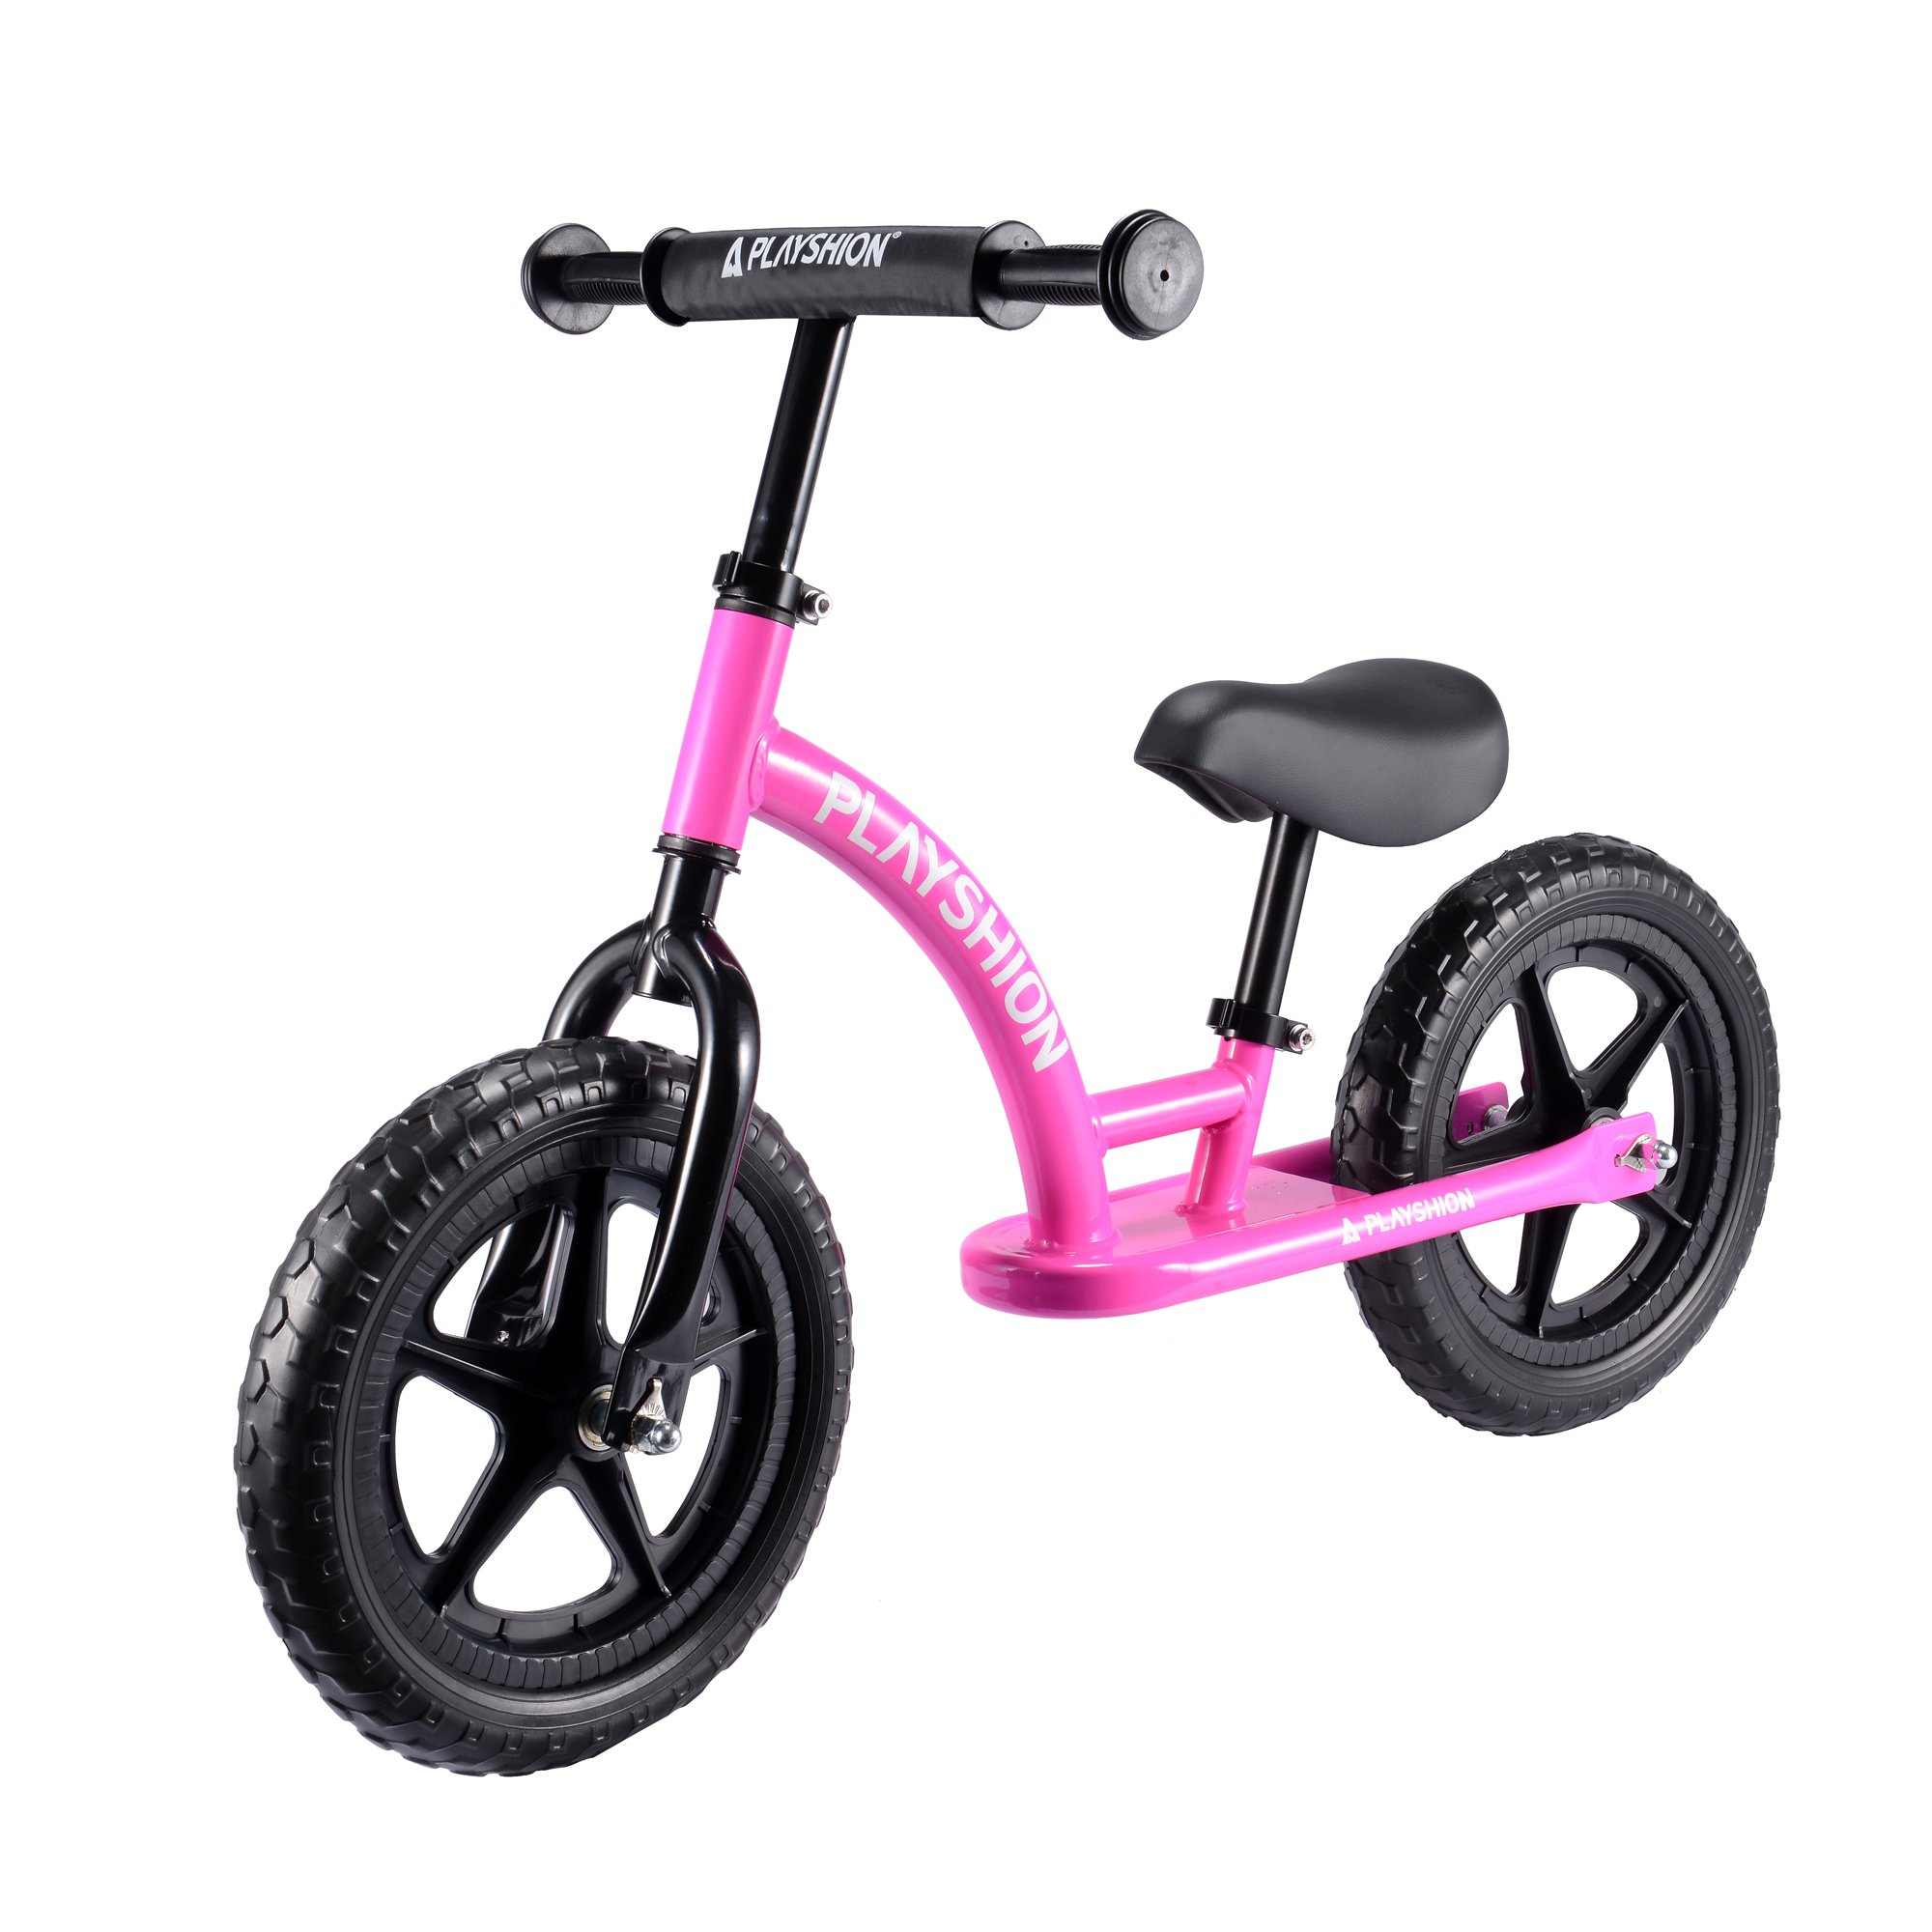 Playshion Kids Balance Bike (pink)